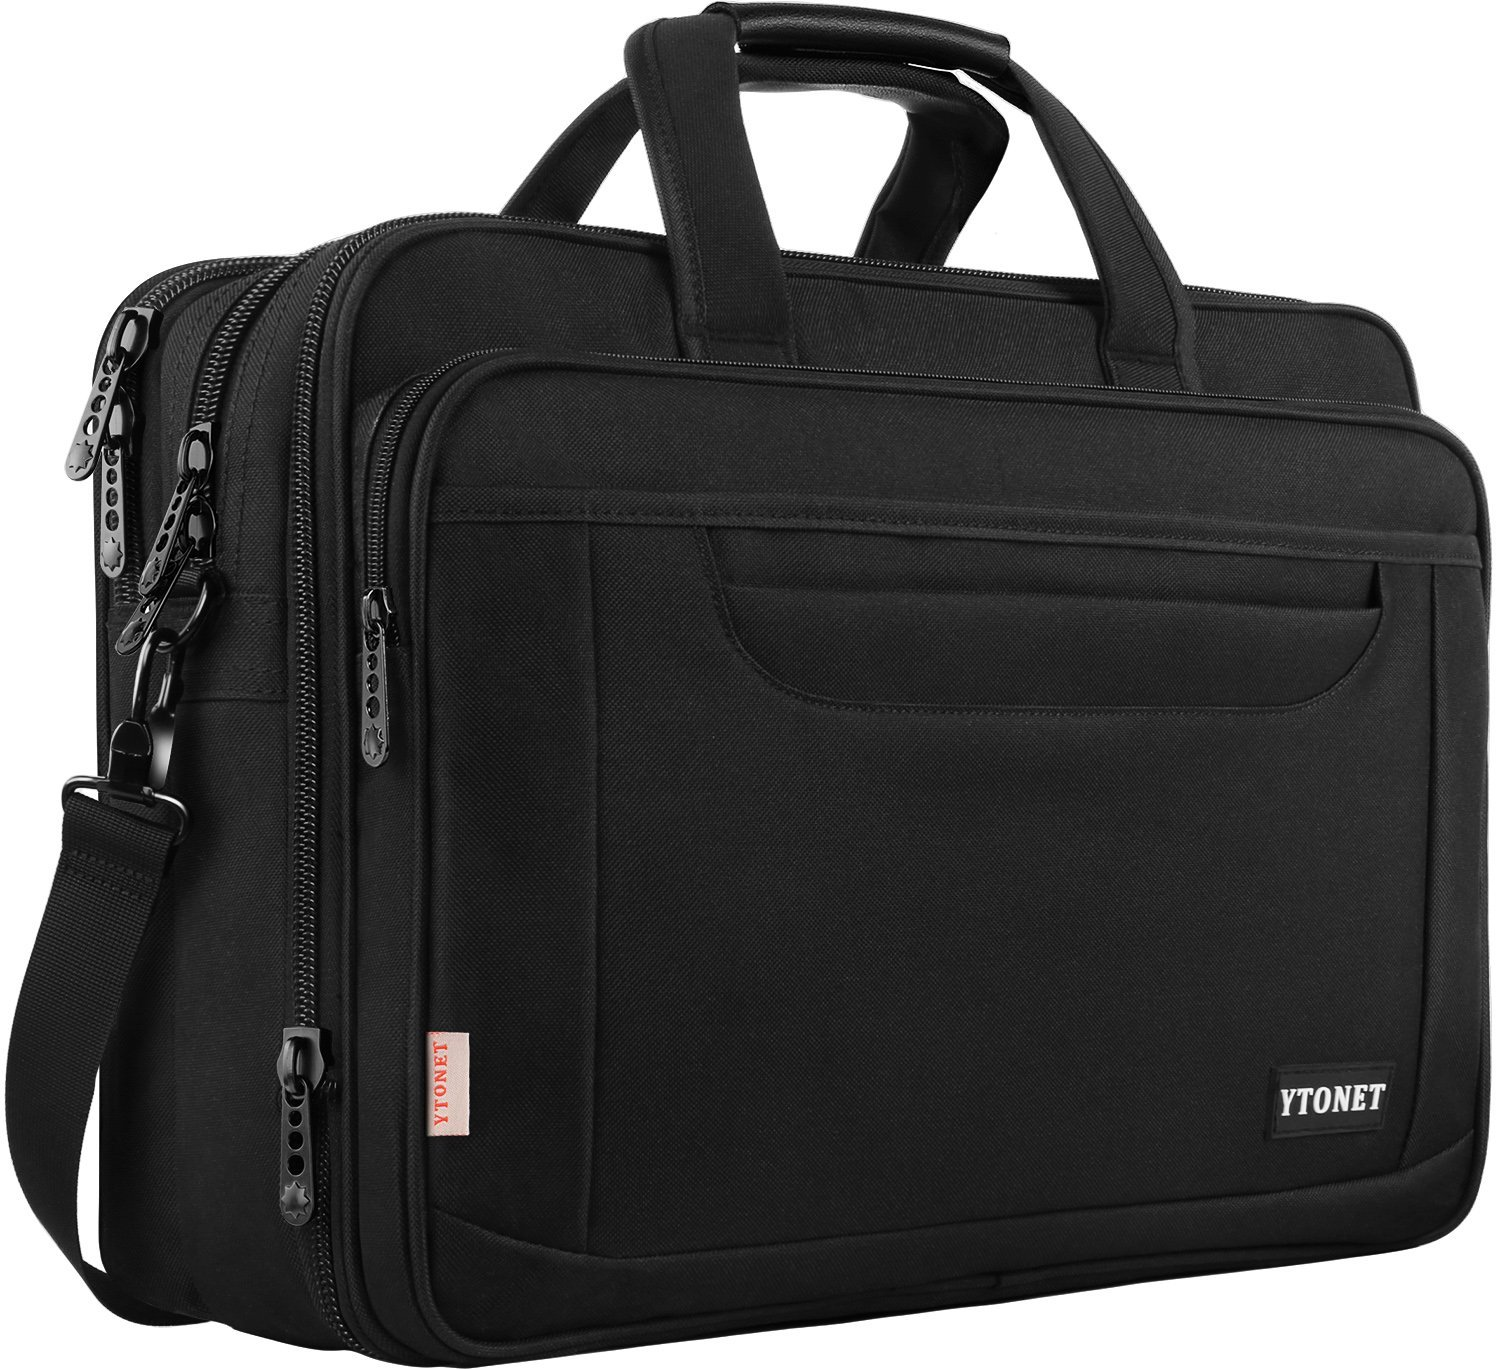 Laptop Bag, 17 Inch Expandable Briefcase for Men Women, Water Resistant Business Laptop Case, Durable Multifunctional Messenger Shoulder Bag Fit 17.3 17 Inch Notebook for Travel Office Work, Black